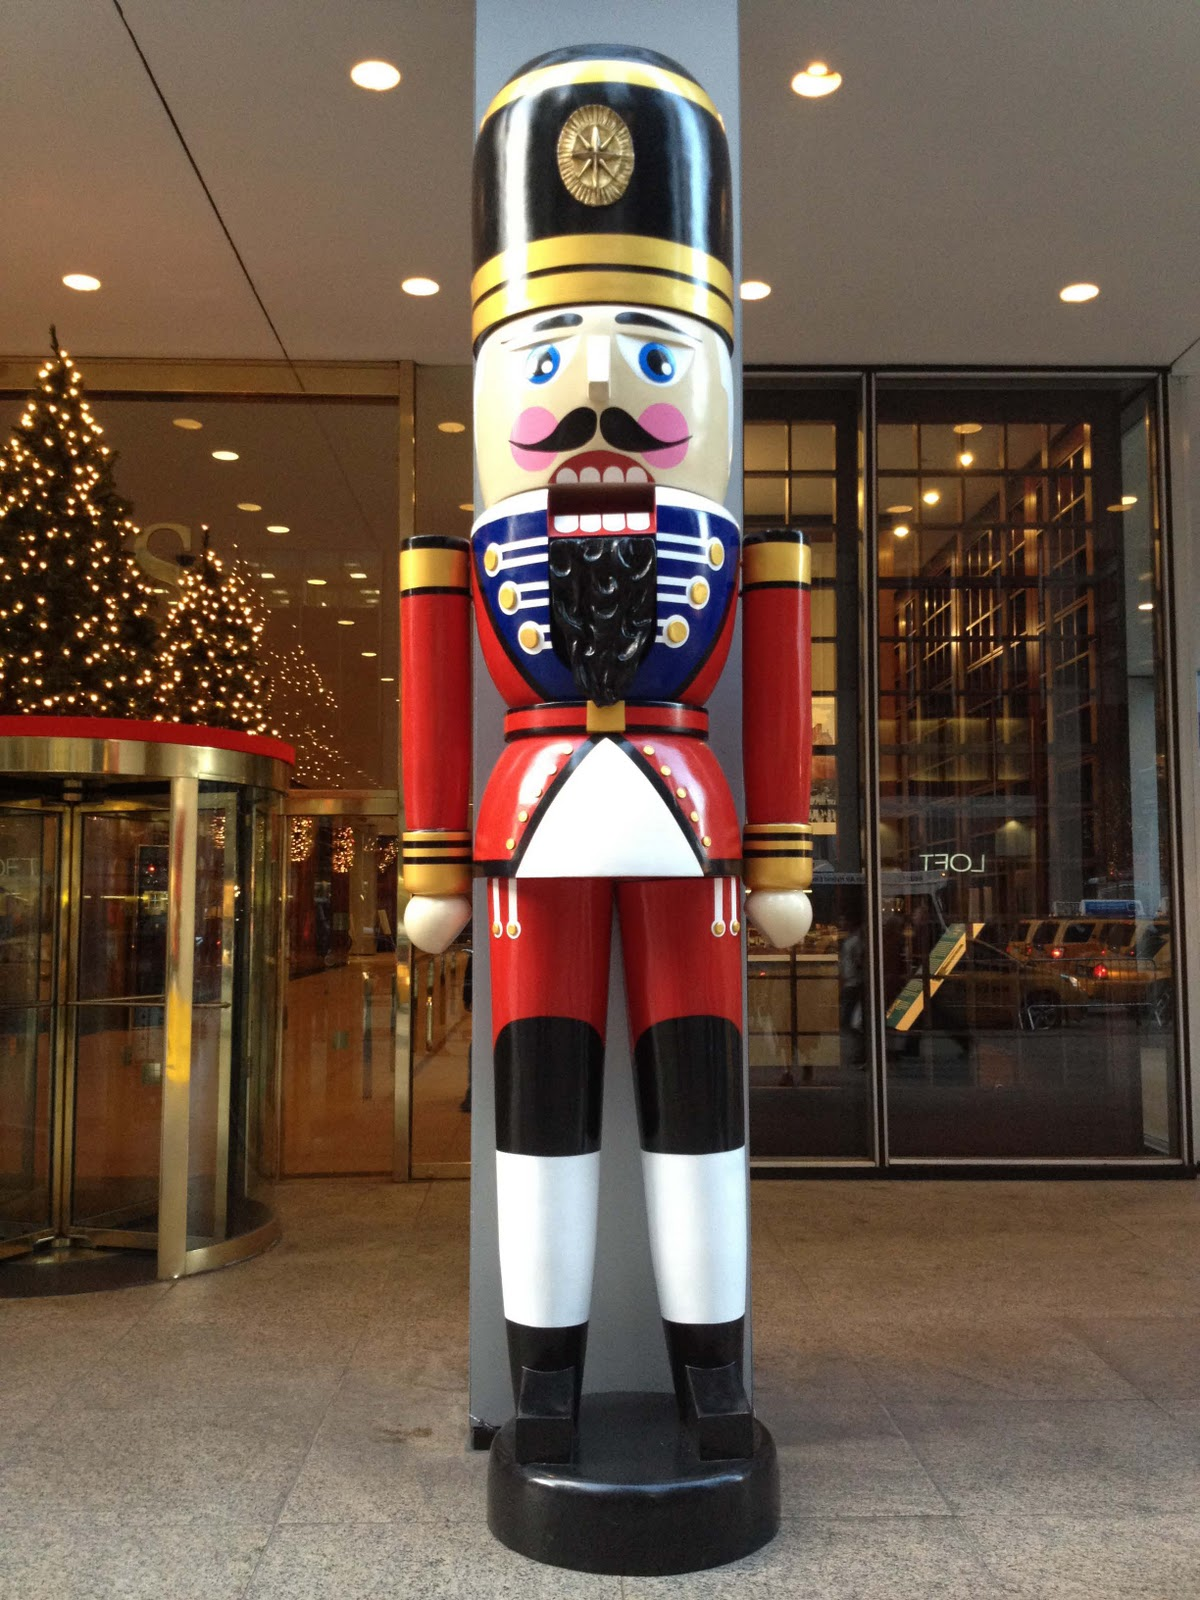 downtown decorations inc oversized 12ft tall fiberglass